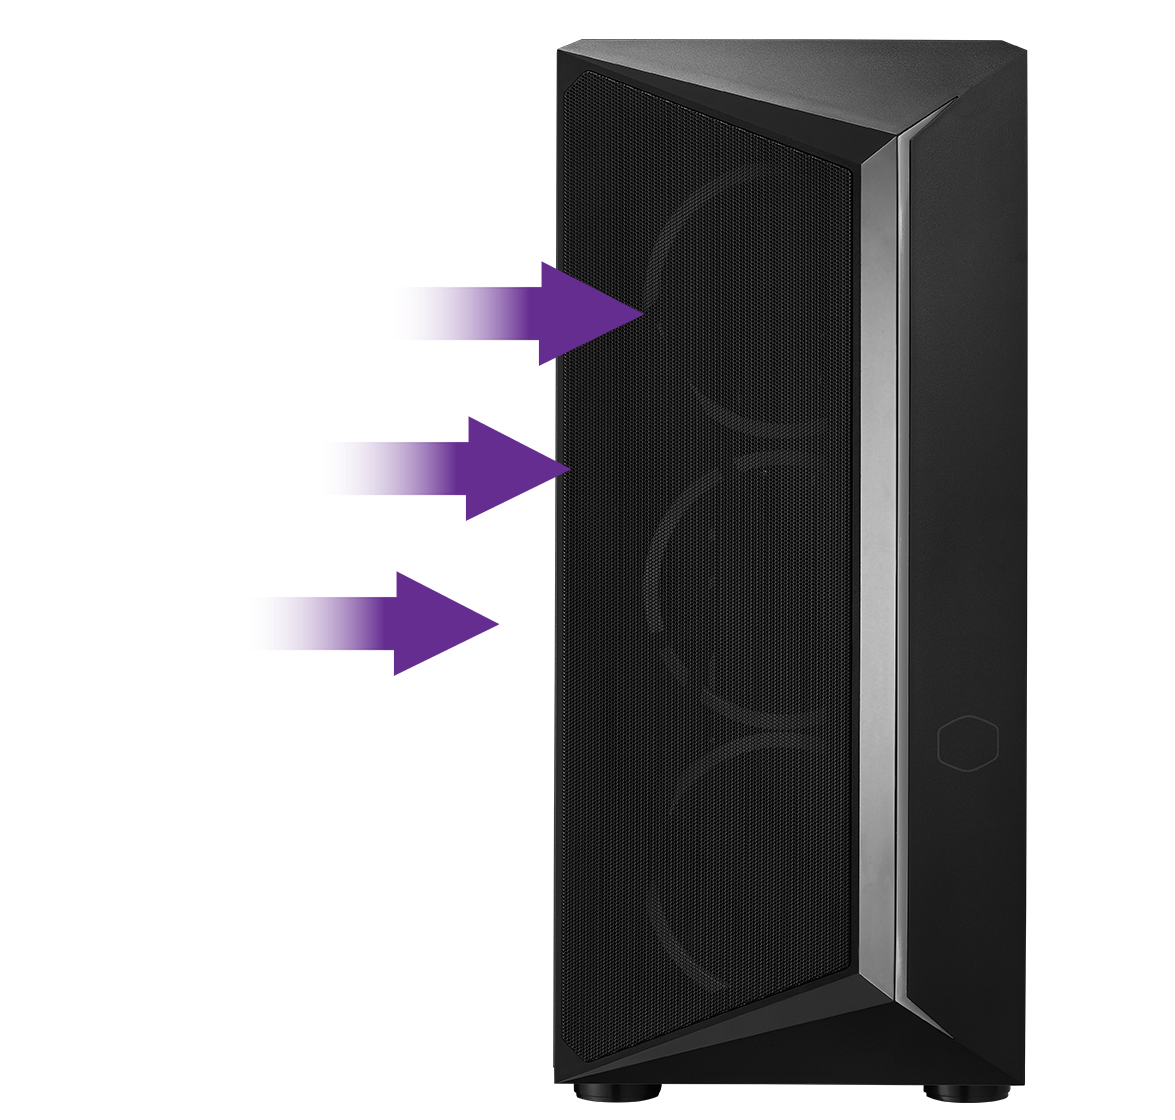 Large Filtered Intakes